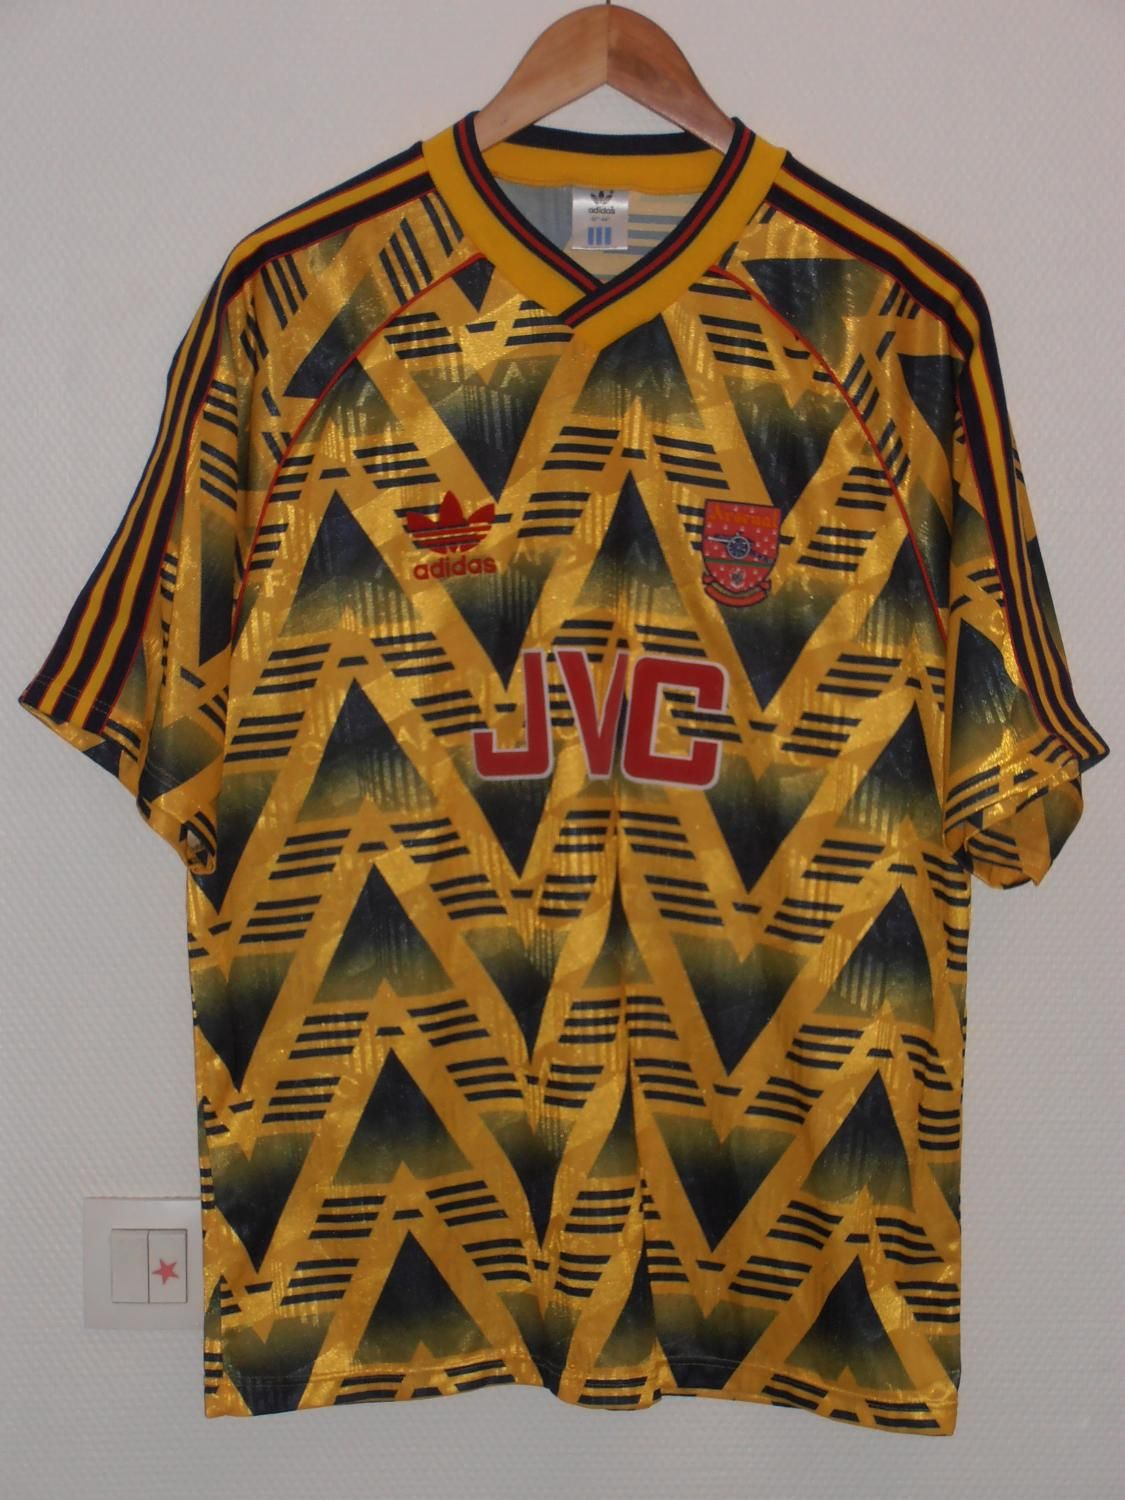 9fa9de78358 Arsenal football shirt 1991 - 1993 -micro pattern -reference -archive